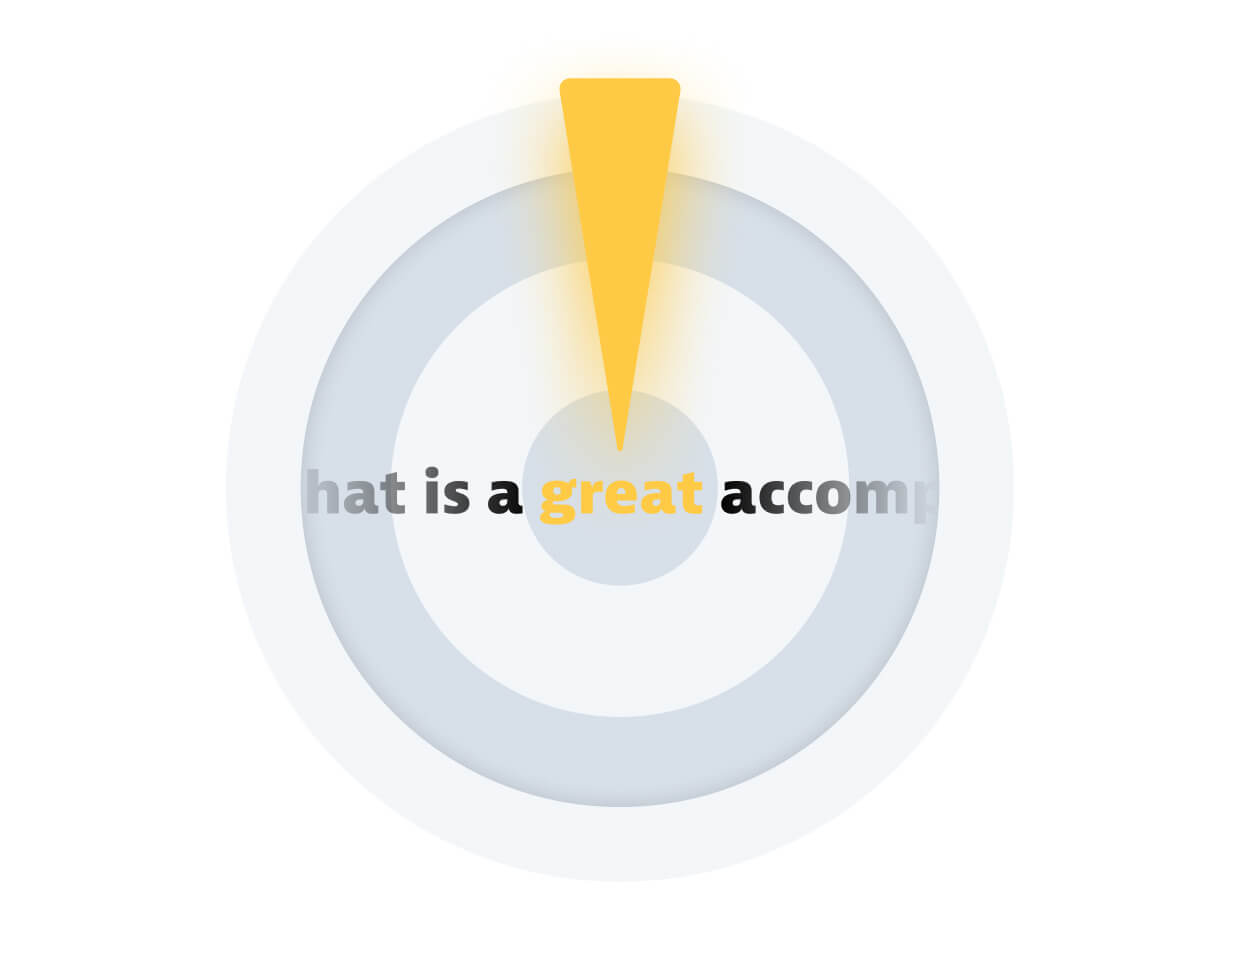 Video to text accuracy